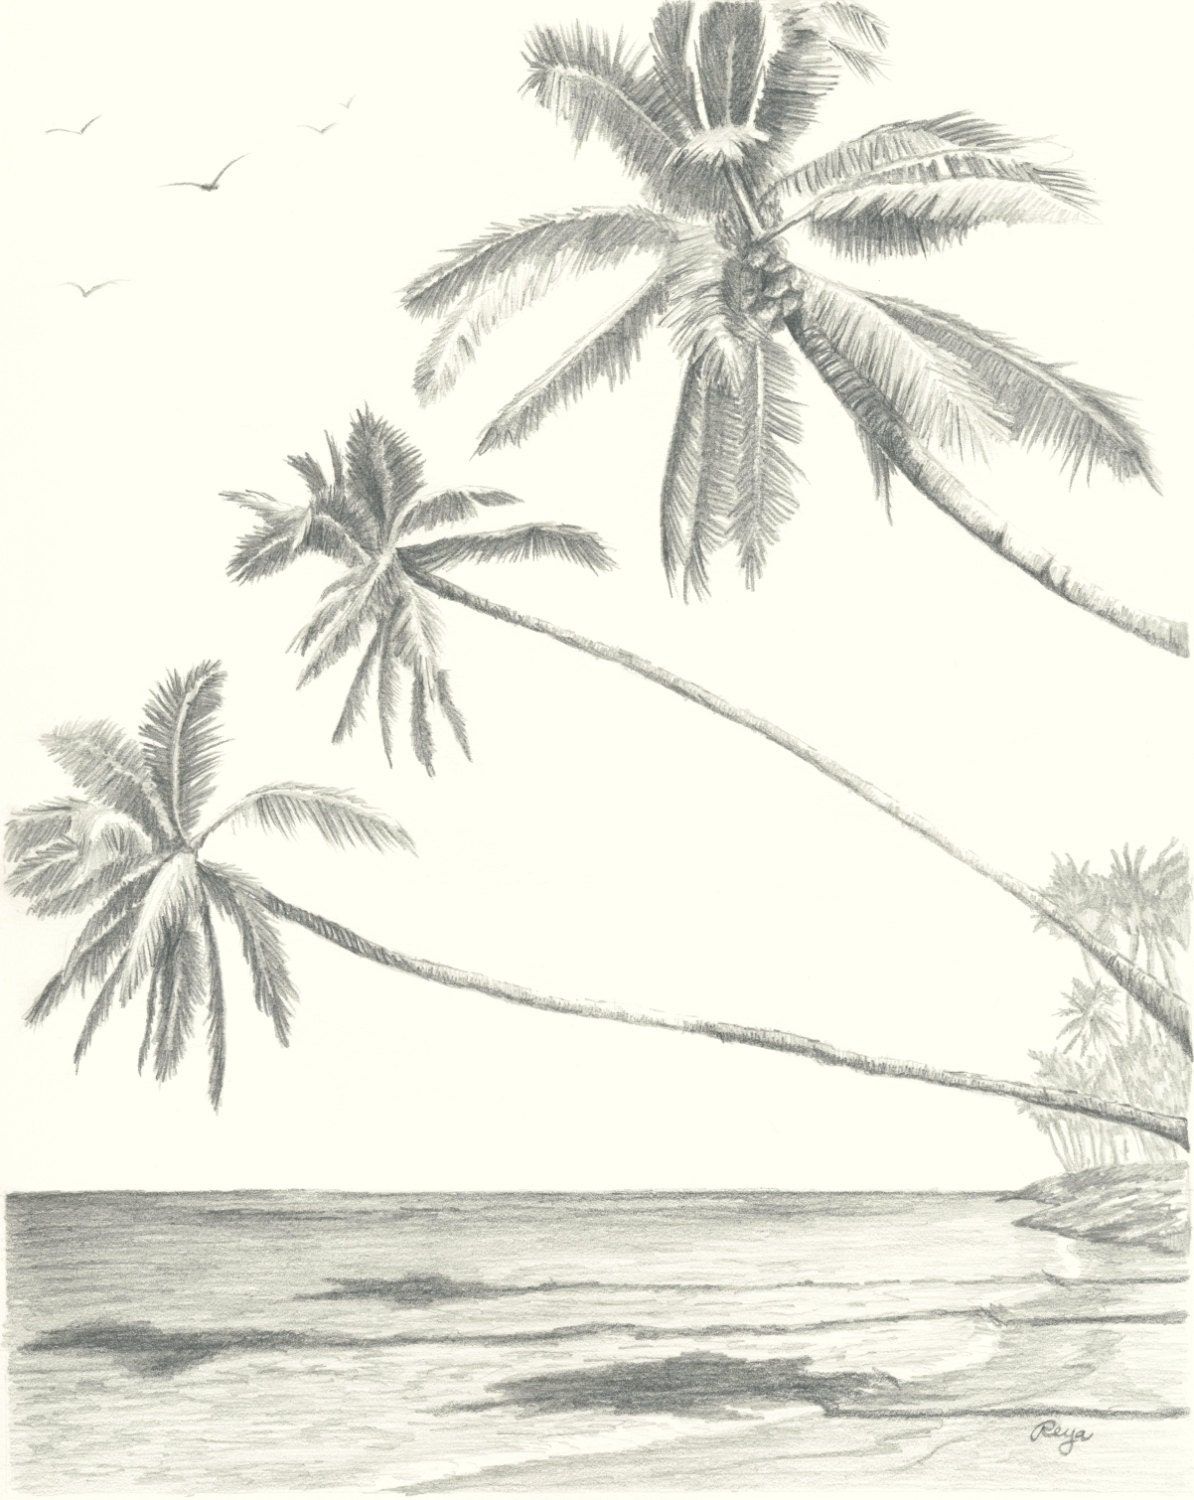 Sketch | Yvonne Pecor Mucci